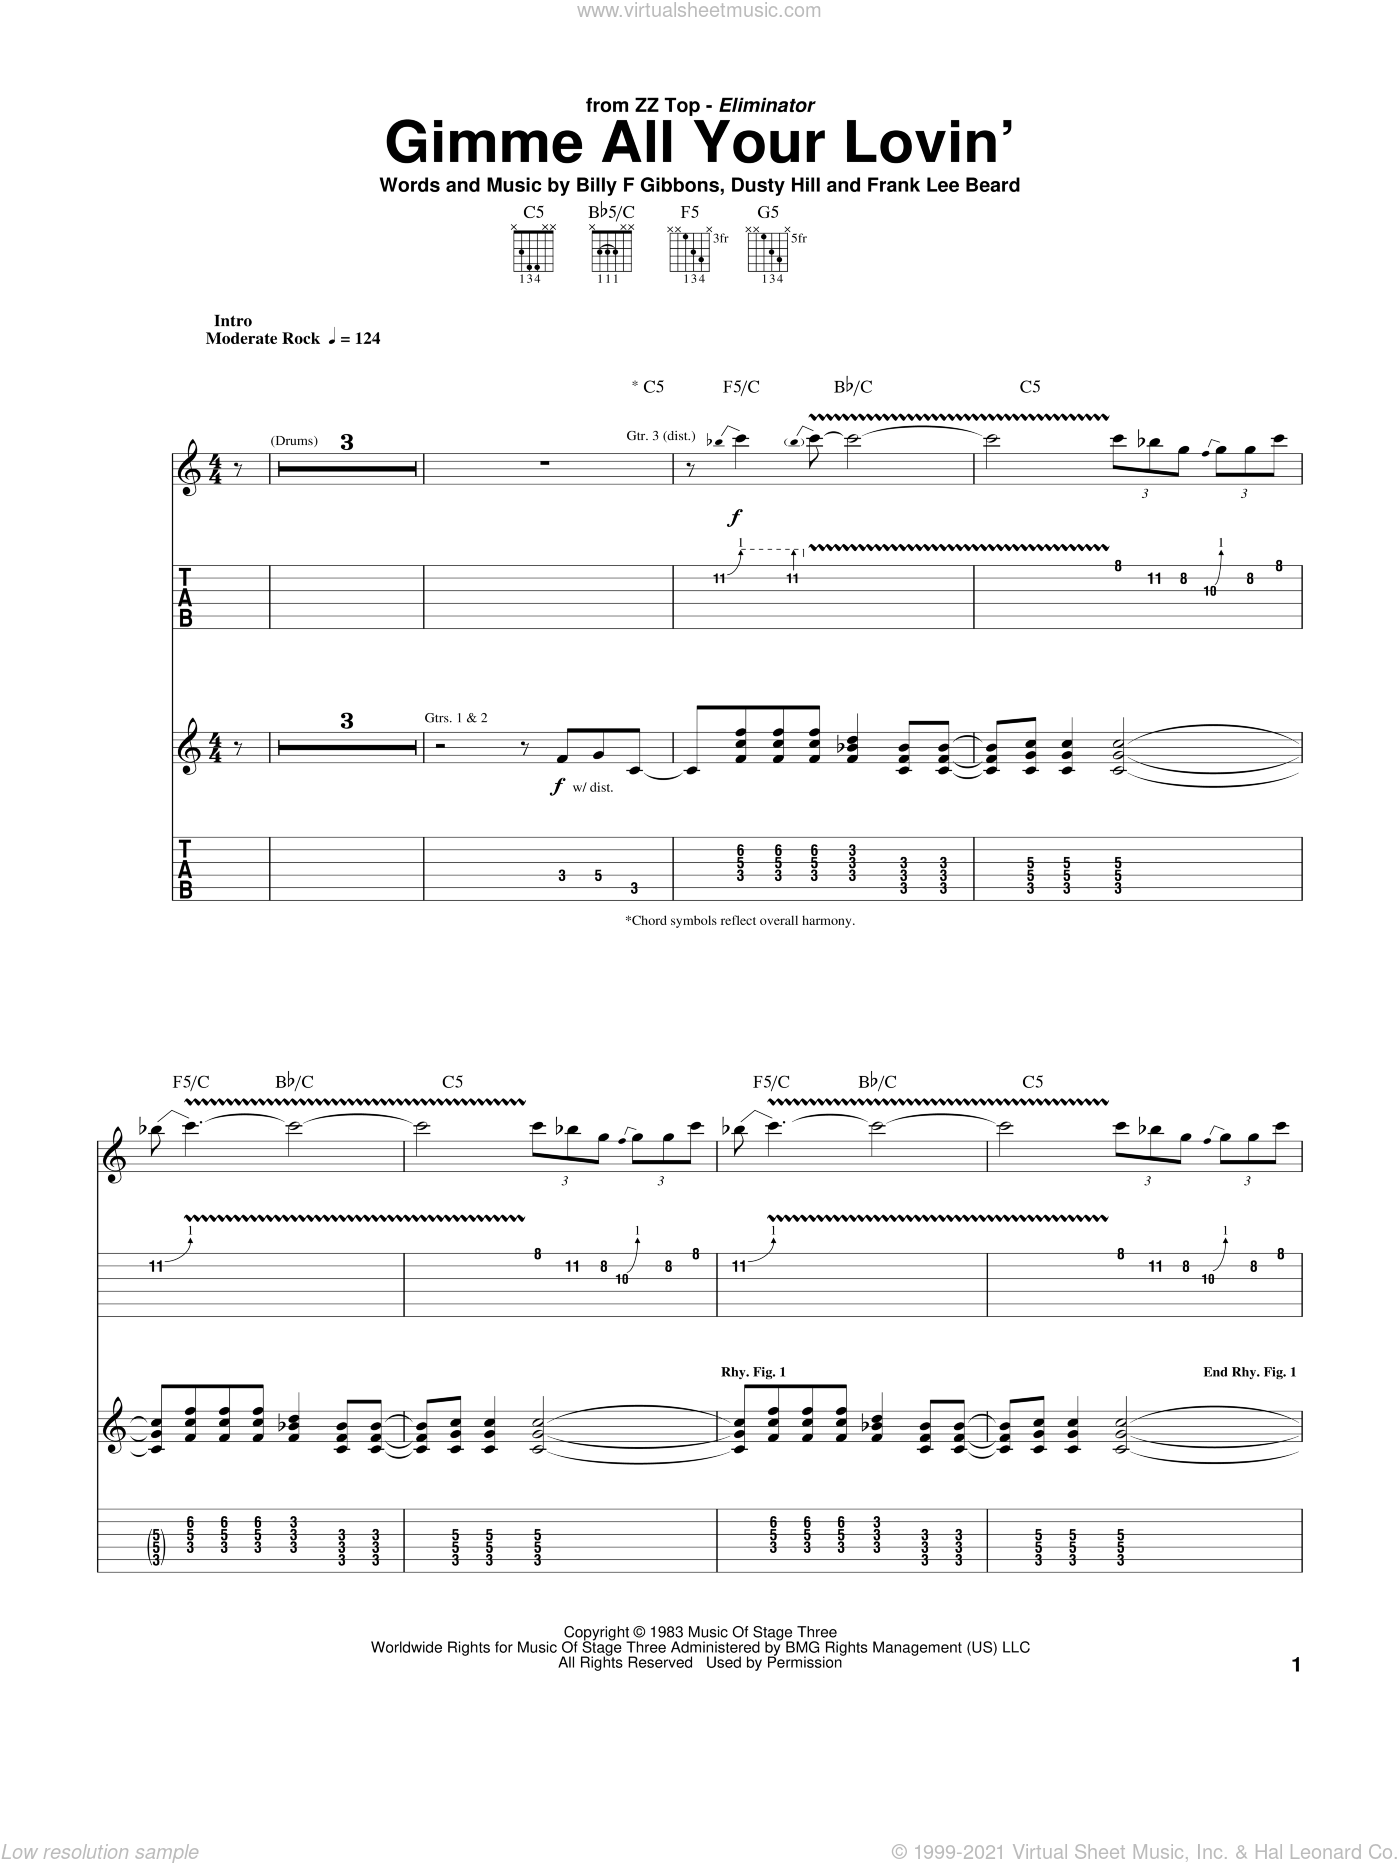 Gimme All Your Lovin' sheet music for guitar (tablature) by Frank Beard